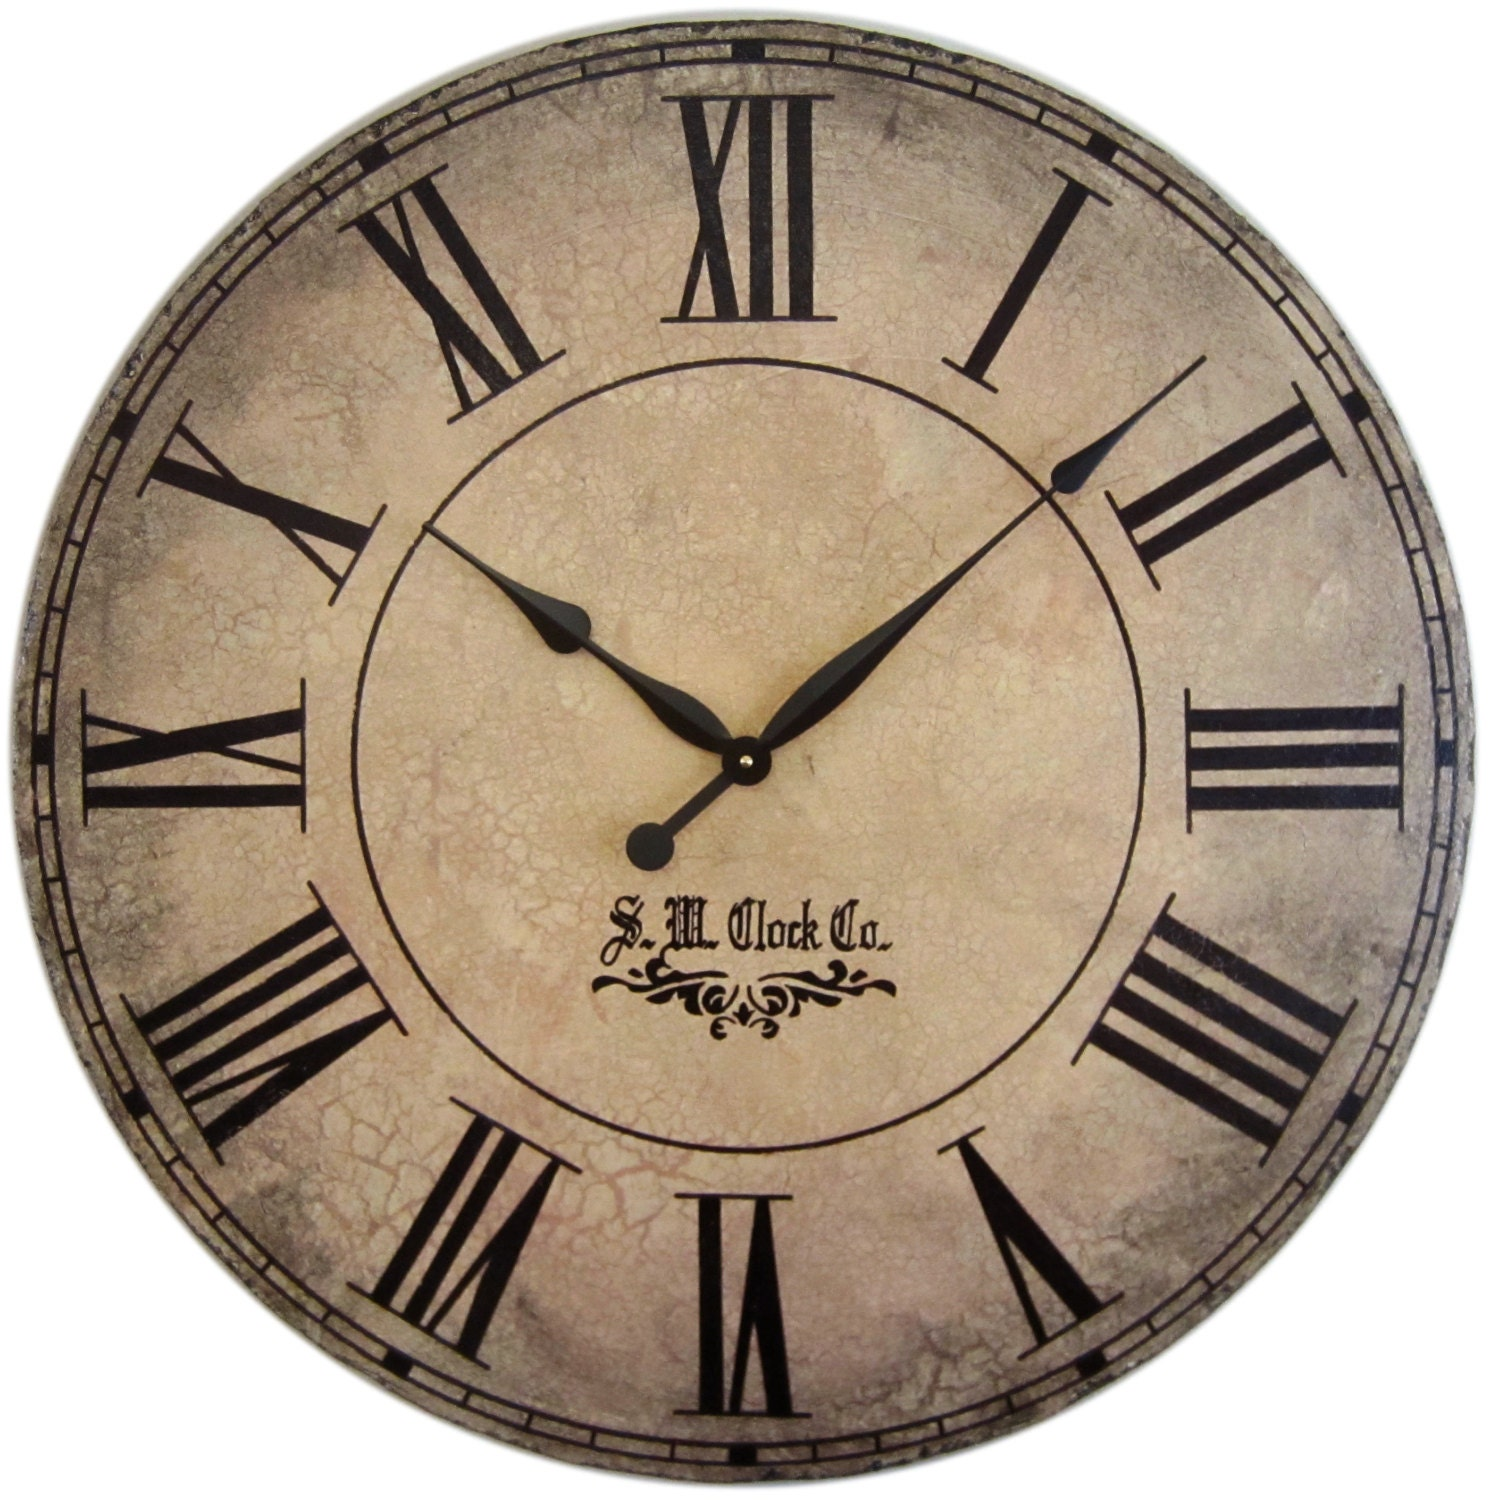 Am americana country wall clocks - Details The 36 Grand Gallery Wall Clock